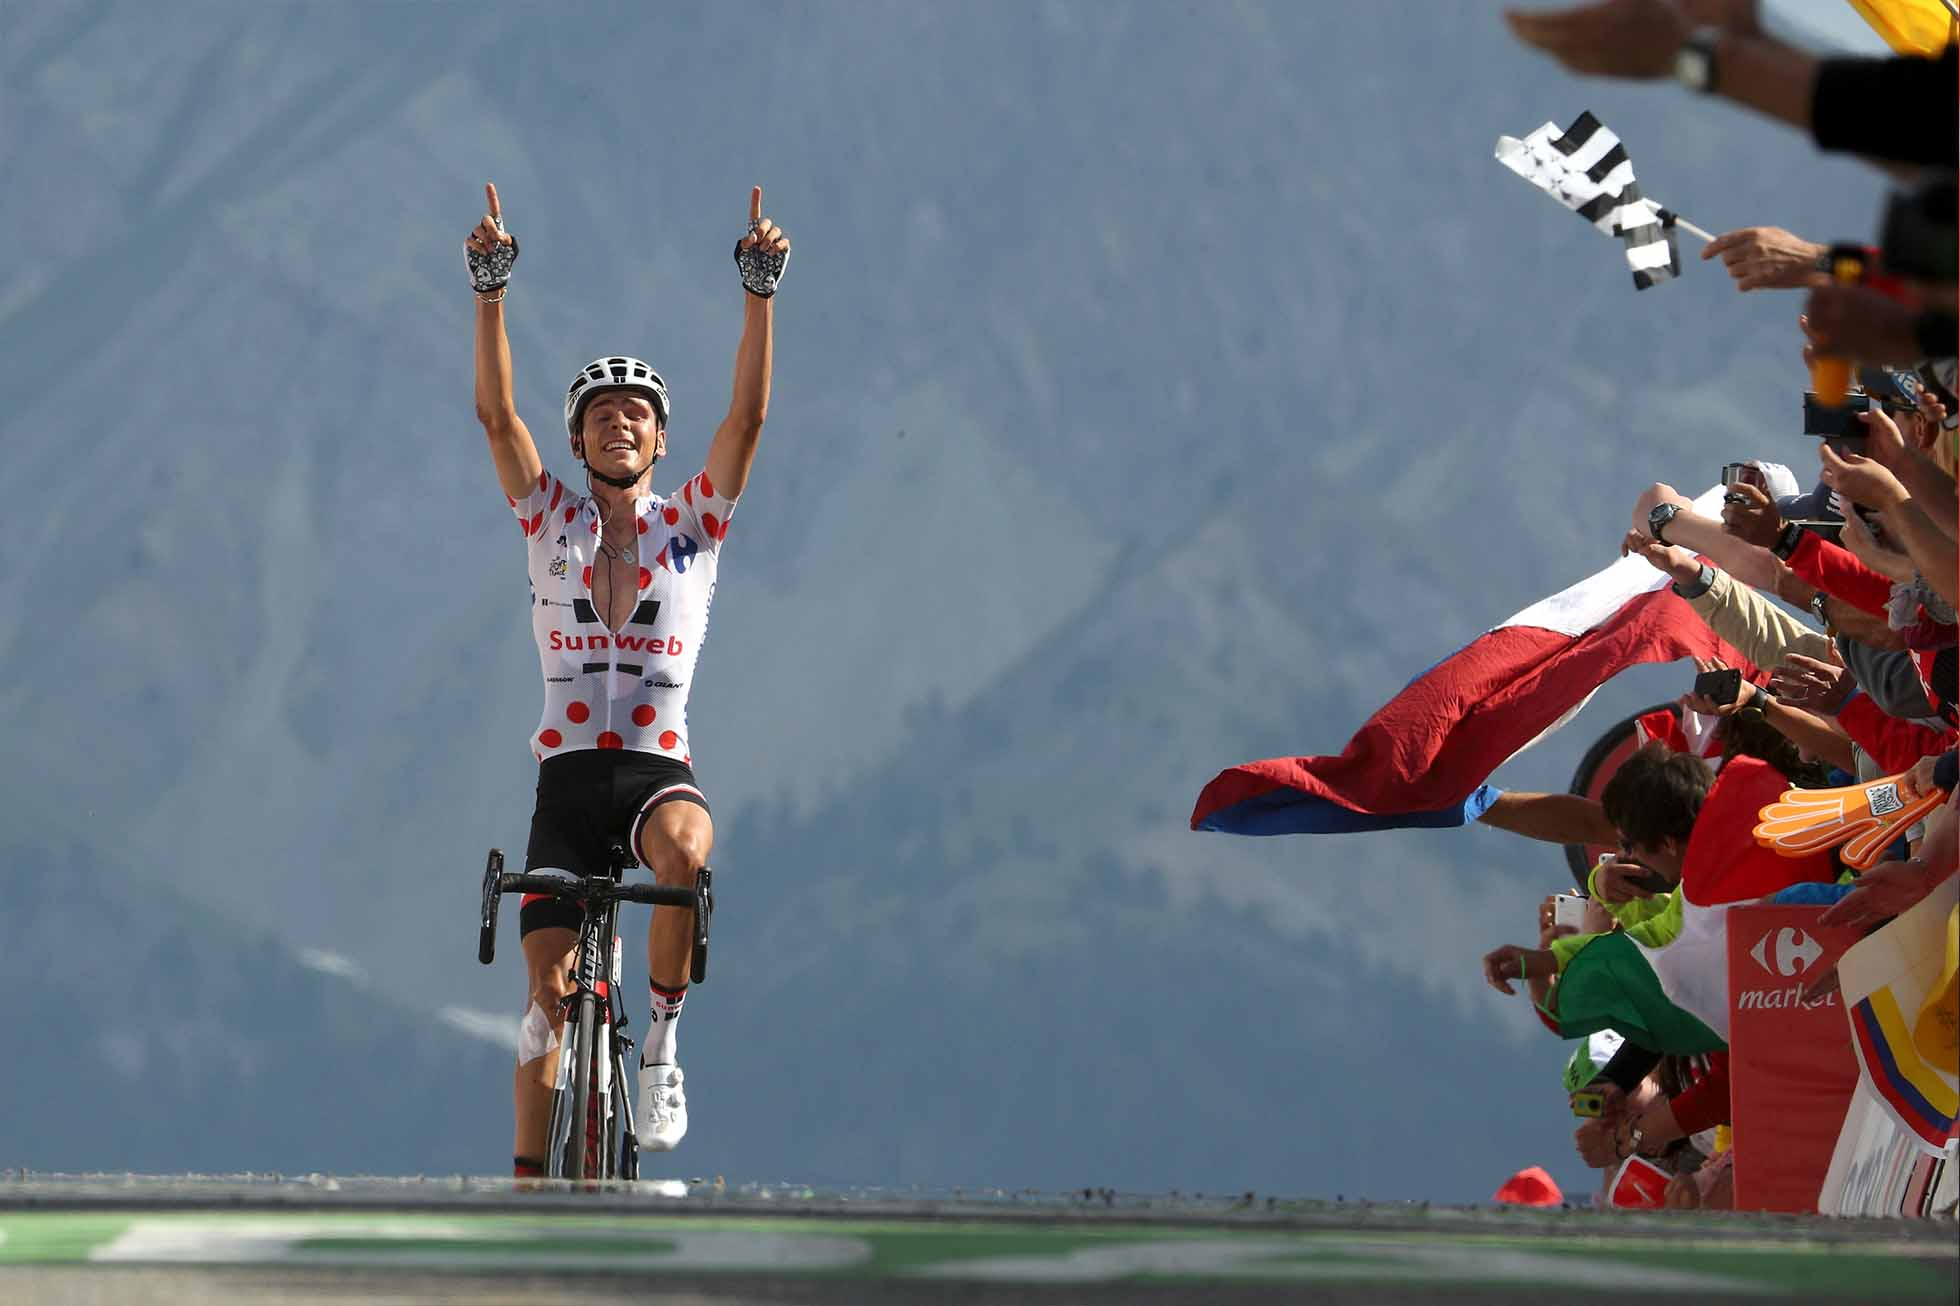 BRIANCON, FRANCE - JULY 20: Warren Barguil of France riding for Team Sunweb celebrates as he wins stage 18 of the 2017 Le Tour de France, a 179.5km stage from Briançon to Izoard on July 20, 2017 in Briancon, France. (Photo by Chris Graythen/Getty Images)